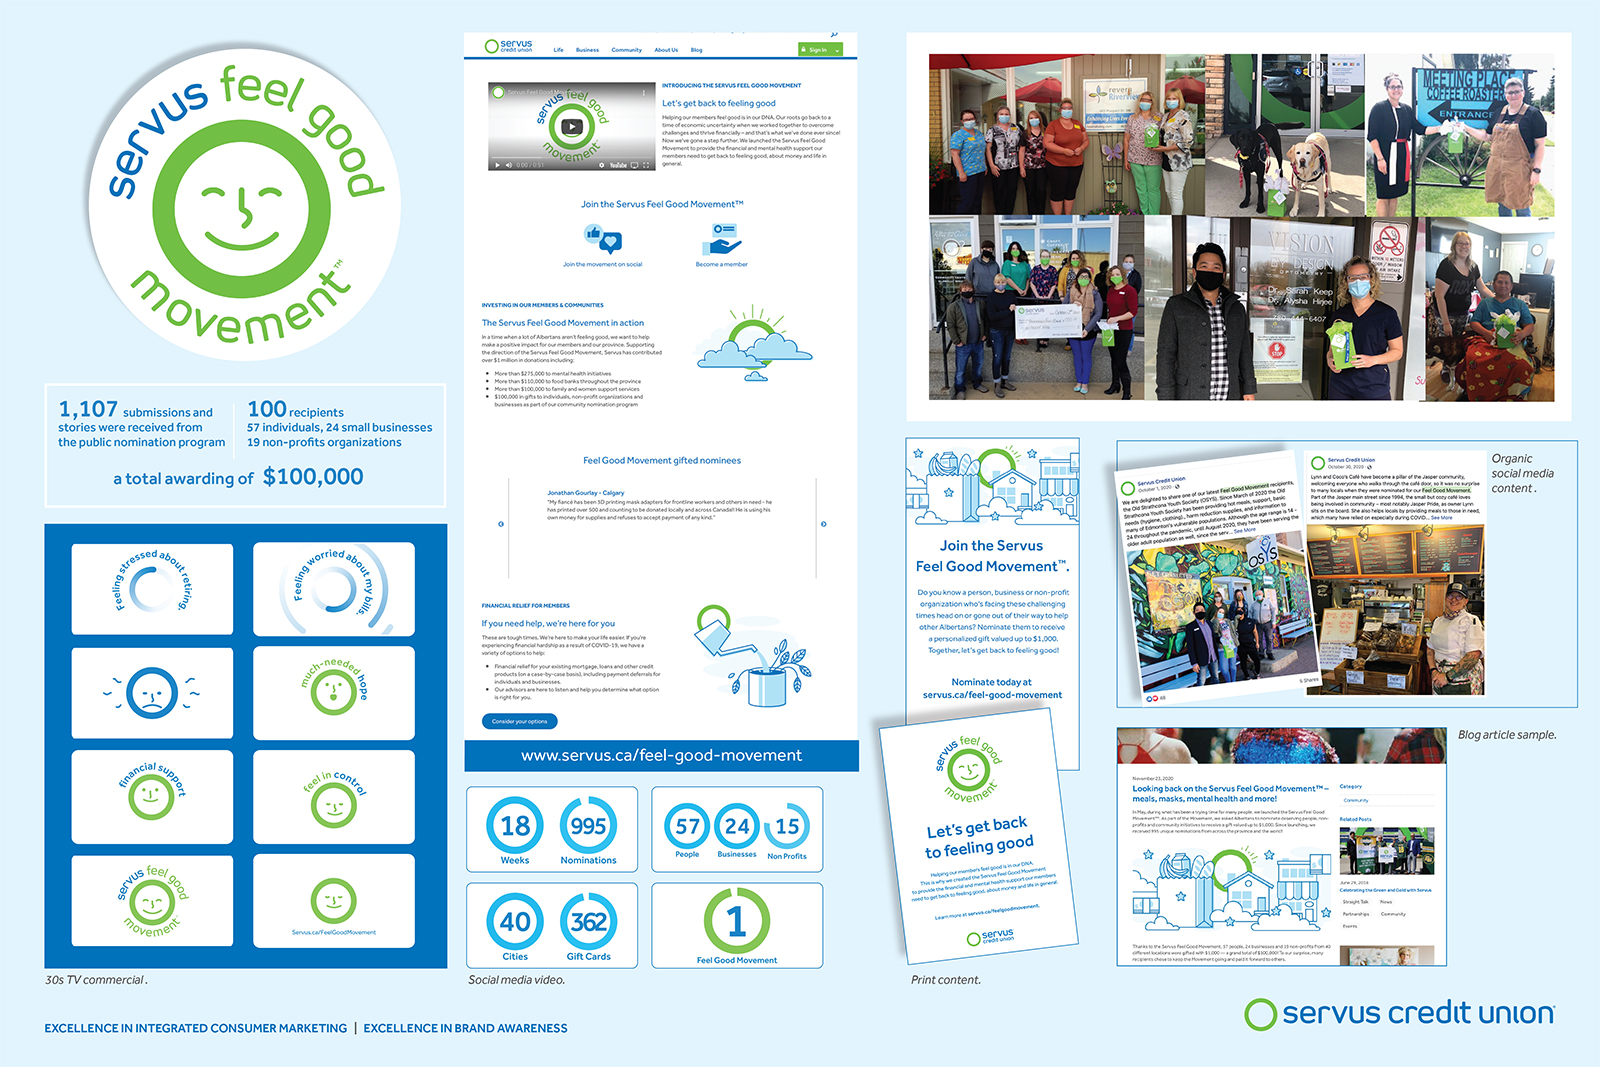 An overview of different marketing collateral for Servus Feel Good Movement.